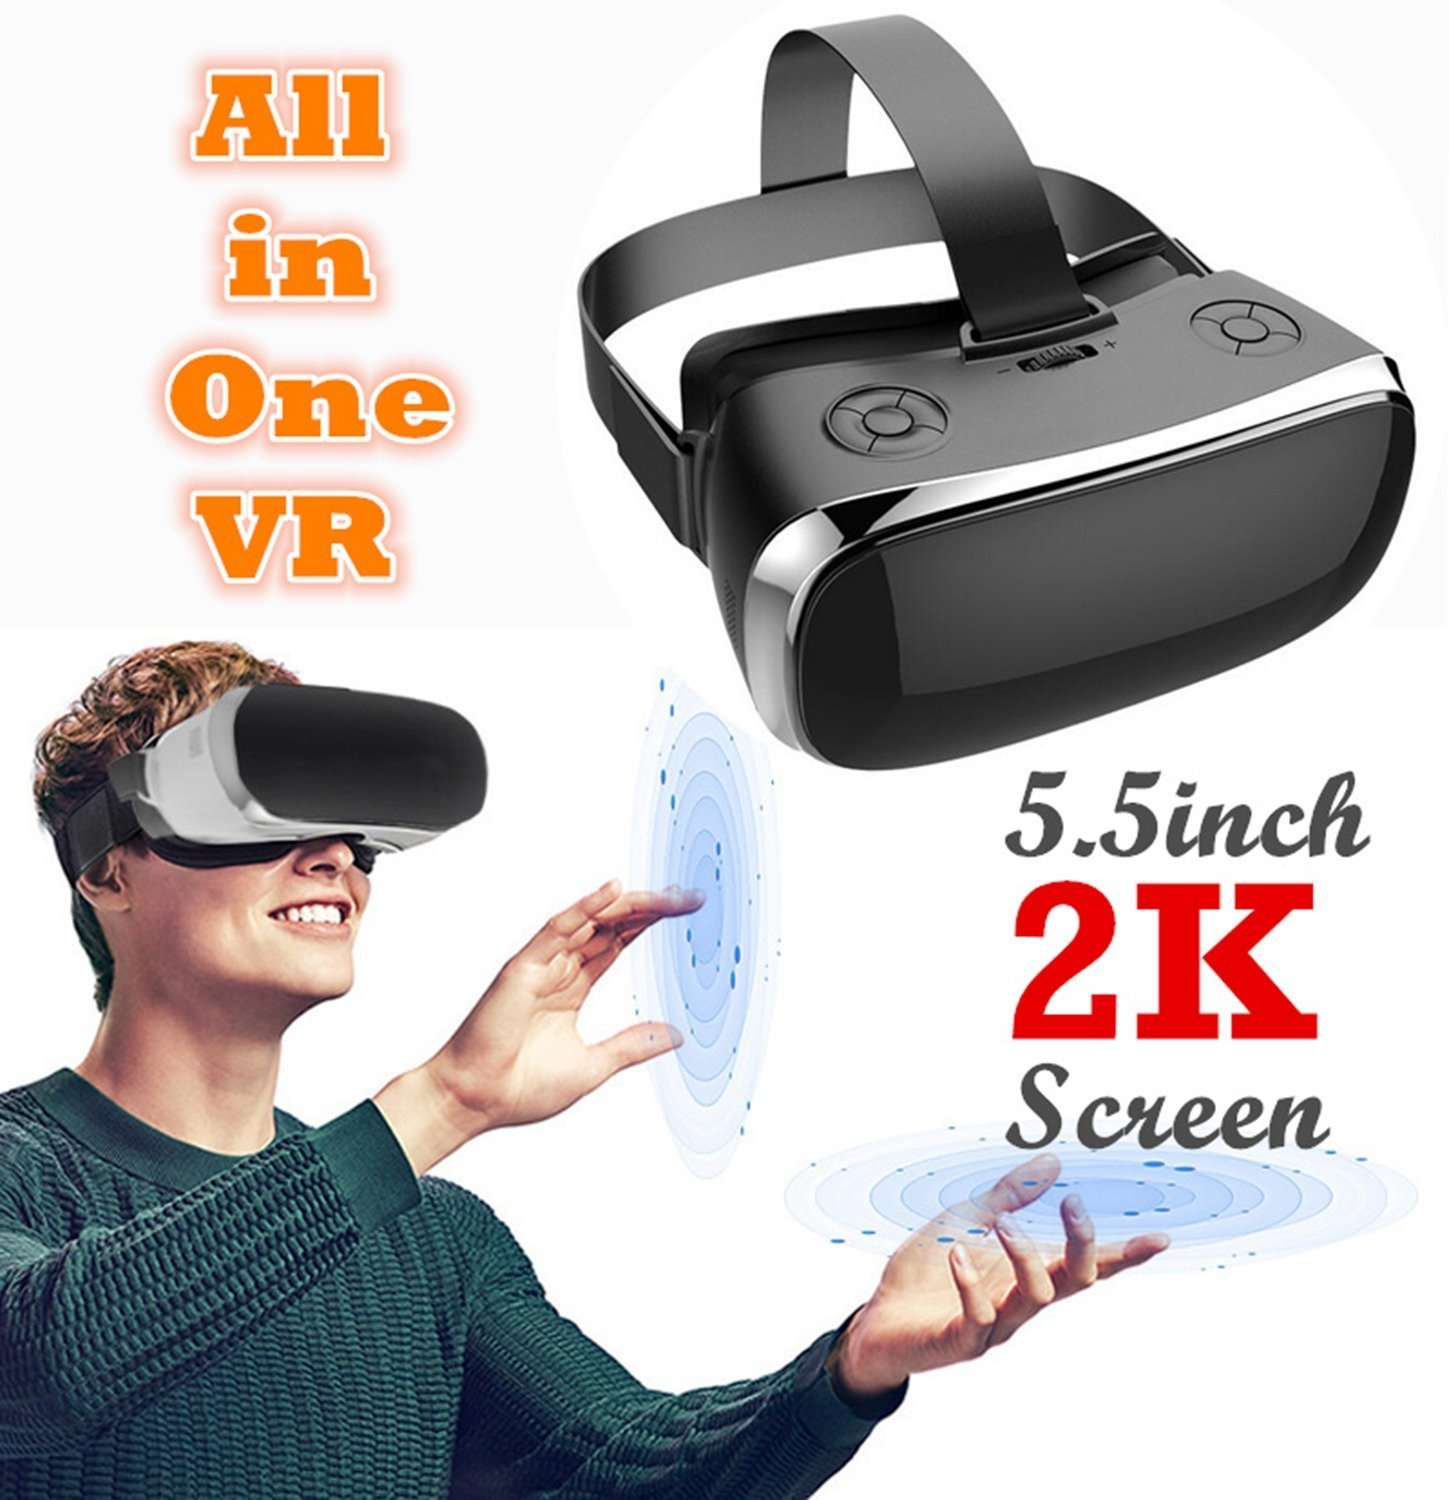 Qkifly 3D VR headset Virtual Reality Headset Full HD 2K Display 2560*1440P On Android 5.1 System 360 Degree Panorama Theate for Youtube Games Google Play WiFi Bluetooth HDMI input for Xbo PS by Qkfly (Image #7)